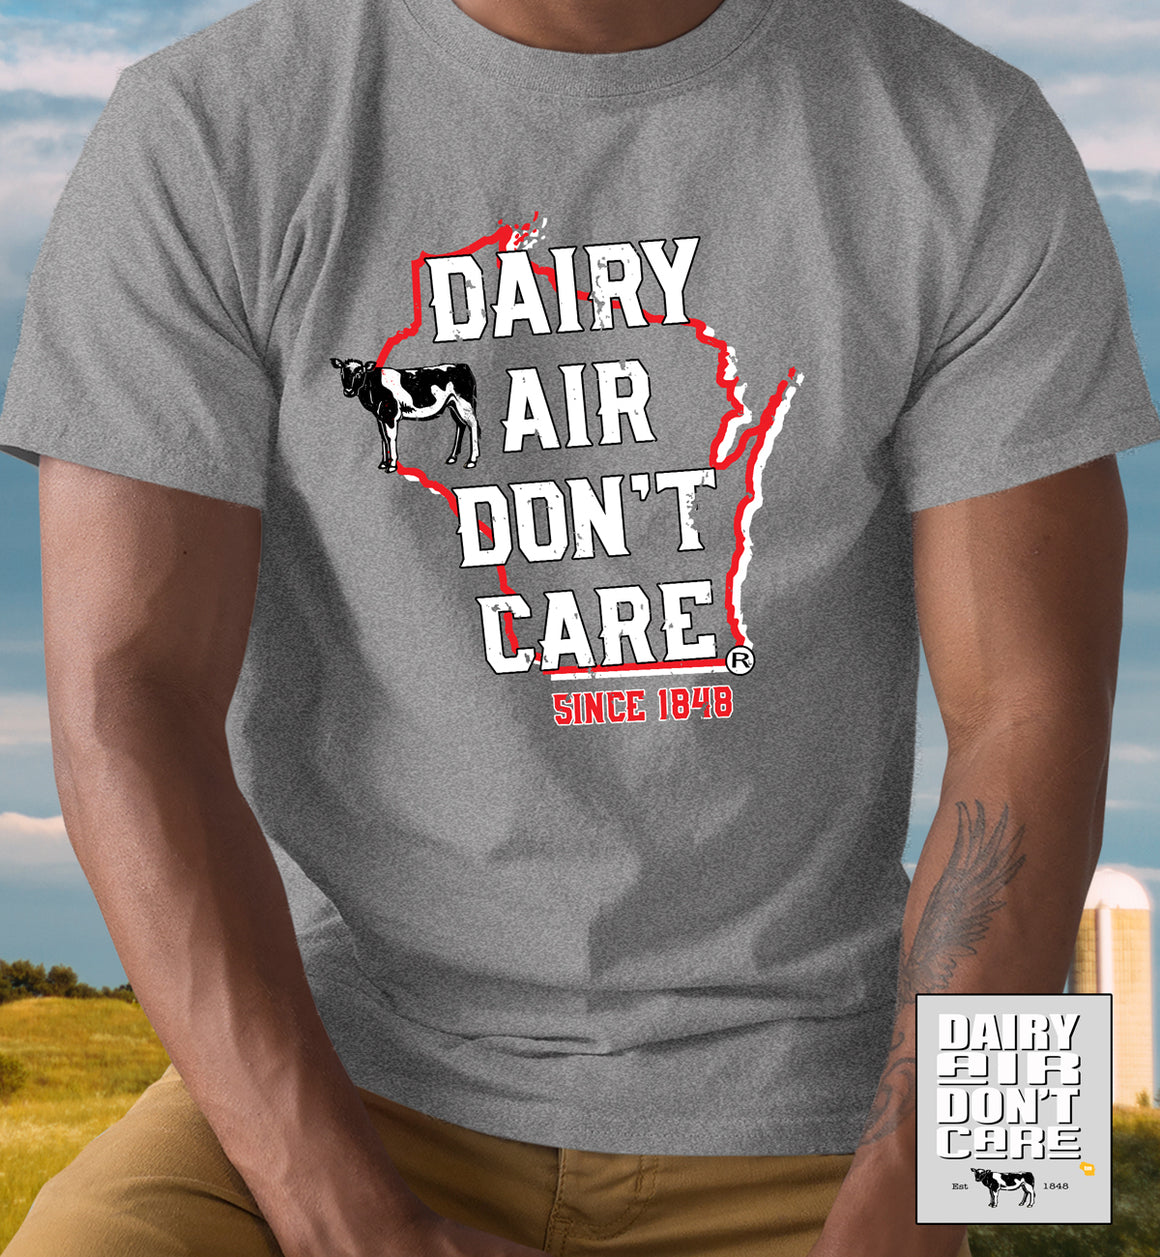 Funny Wisconsin Dairy Airy Don't Care® t-shirt